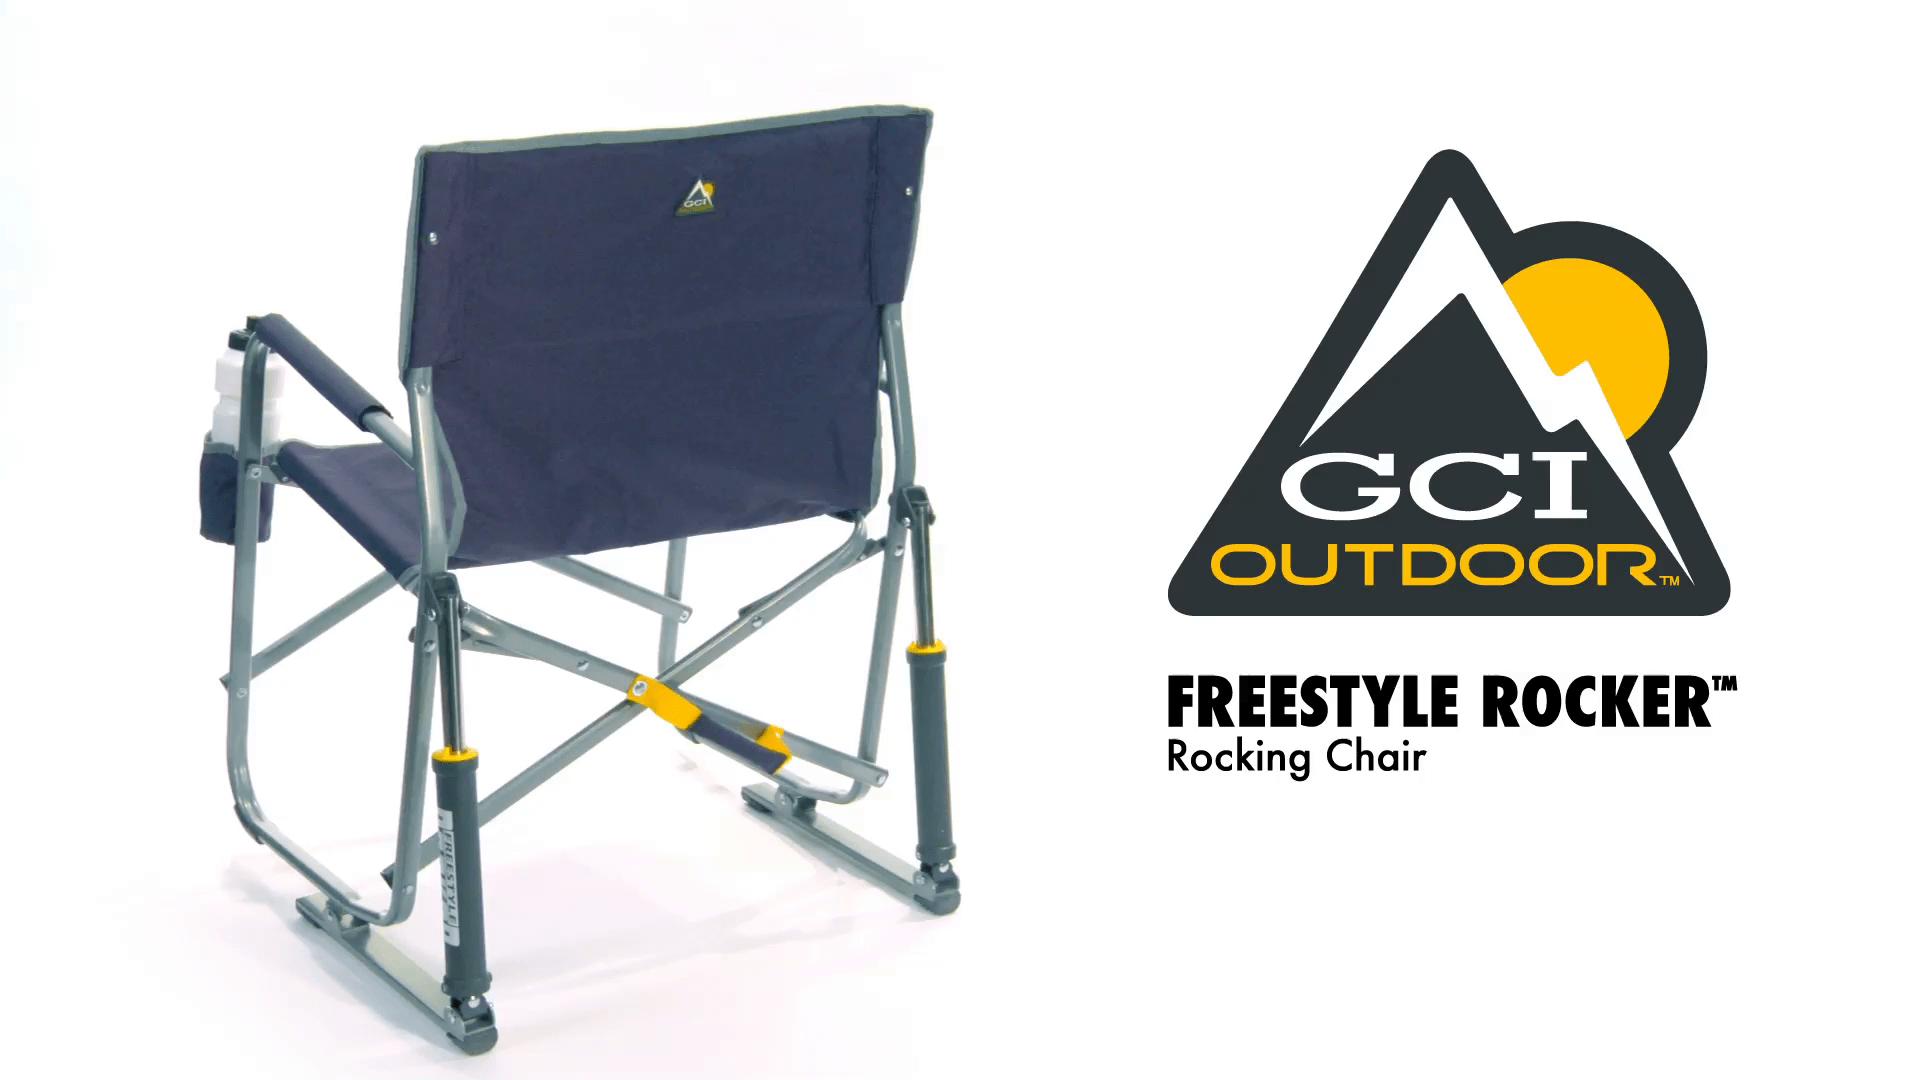 Awe Inspiring Gci Outdoor Freestyle Rocker Portable Folding Rocking Chair Caraccident5 Cool Chair Designs And Ideas Caraccident5Info